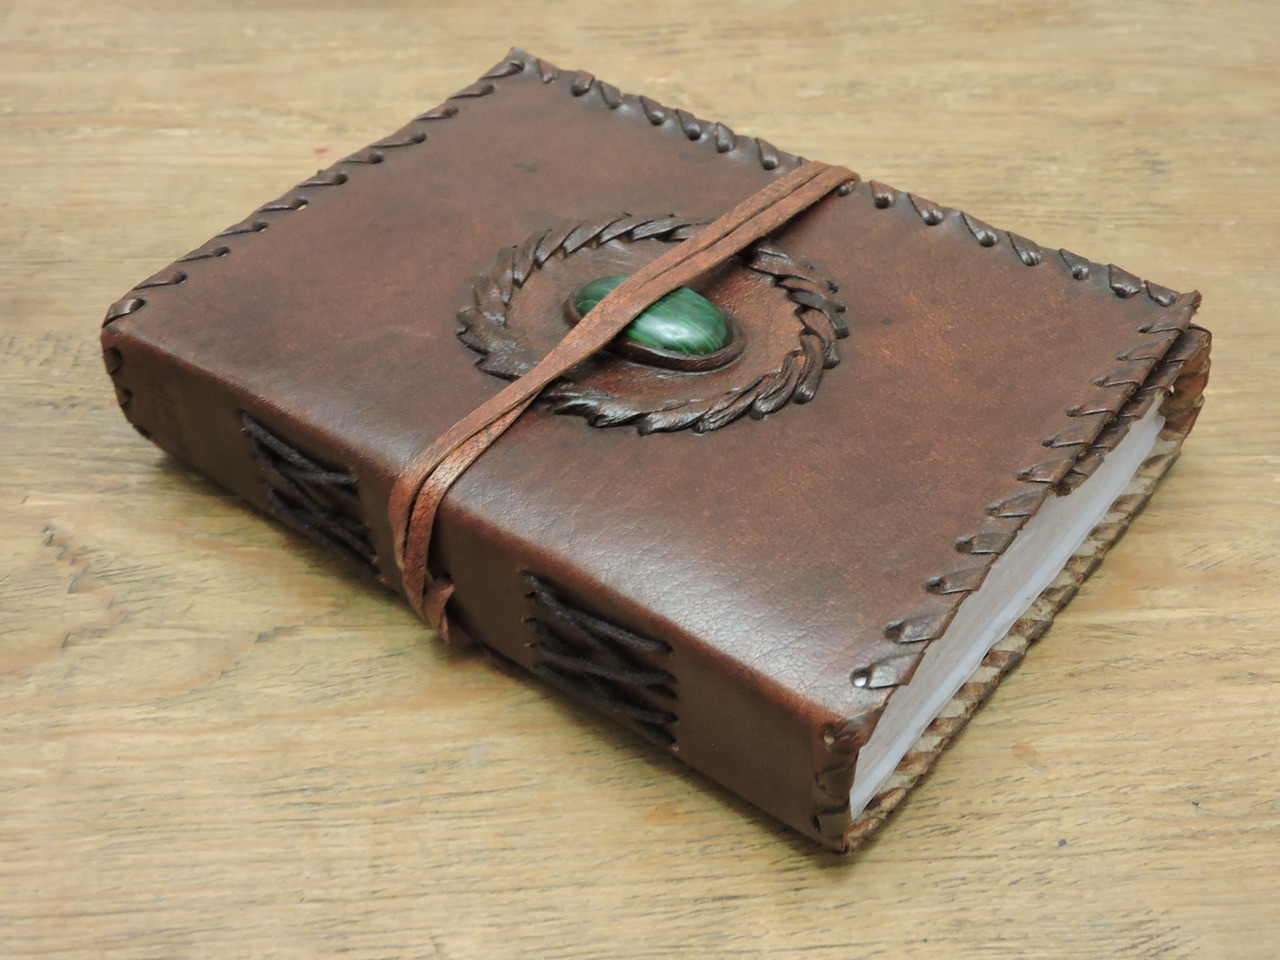 stitch with stone hand made small leather journal - side view